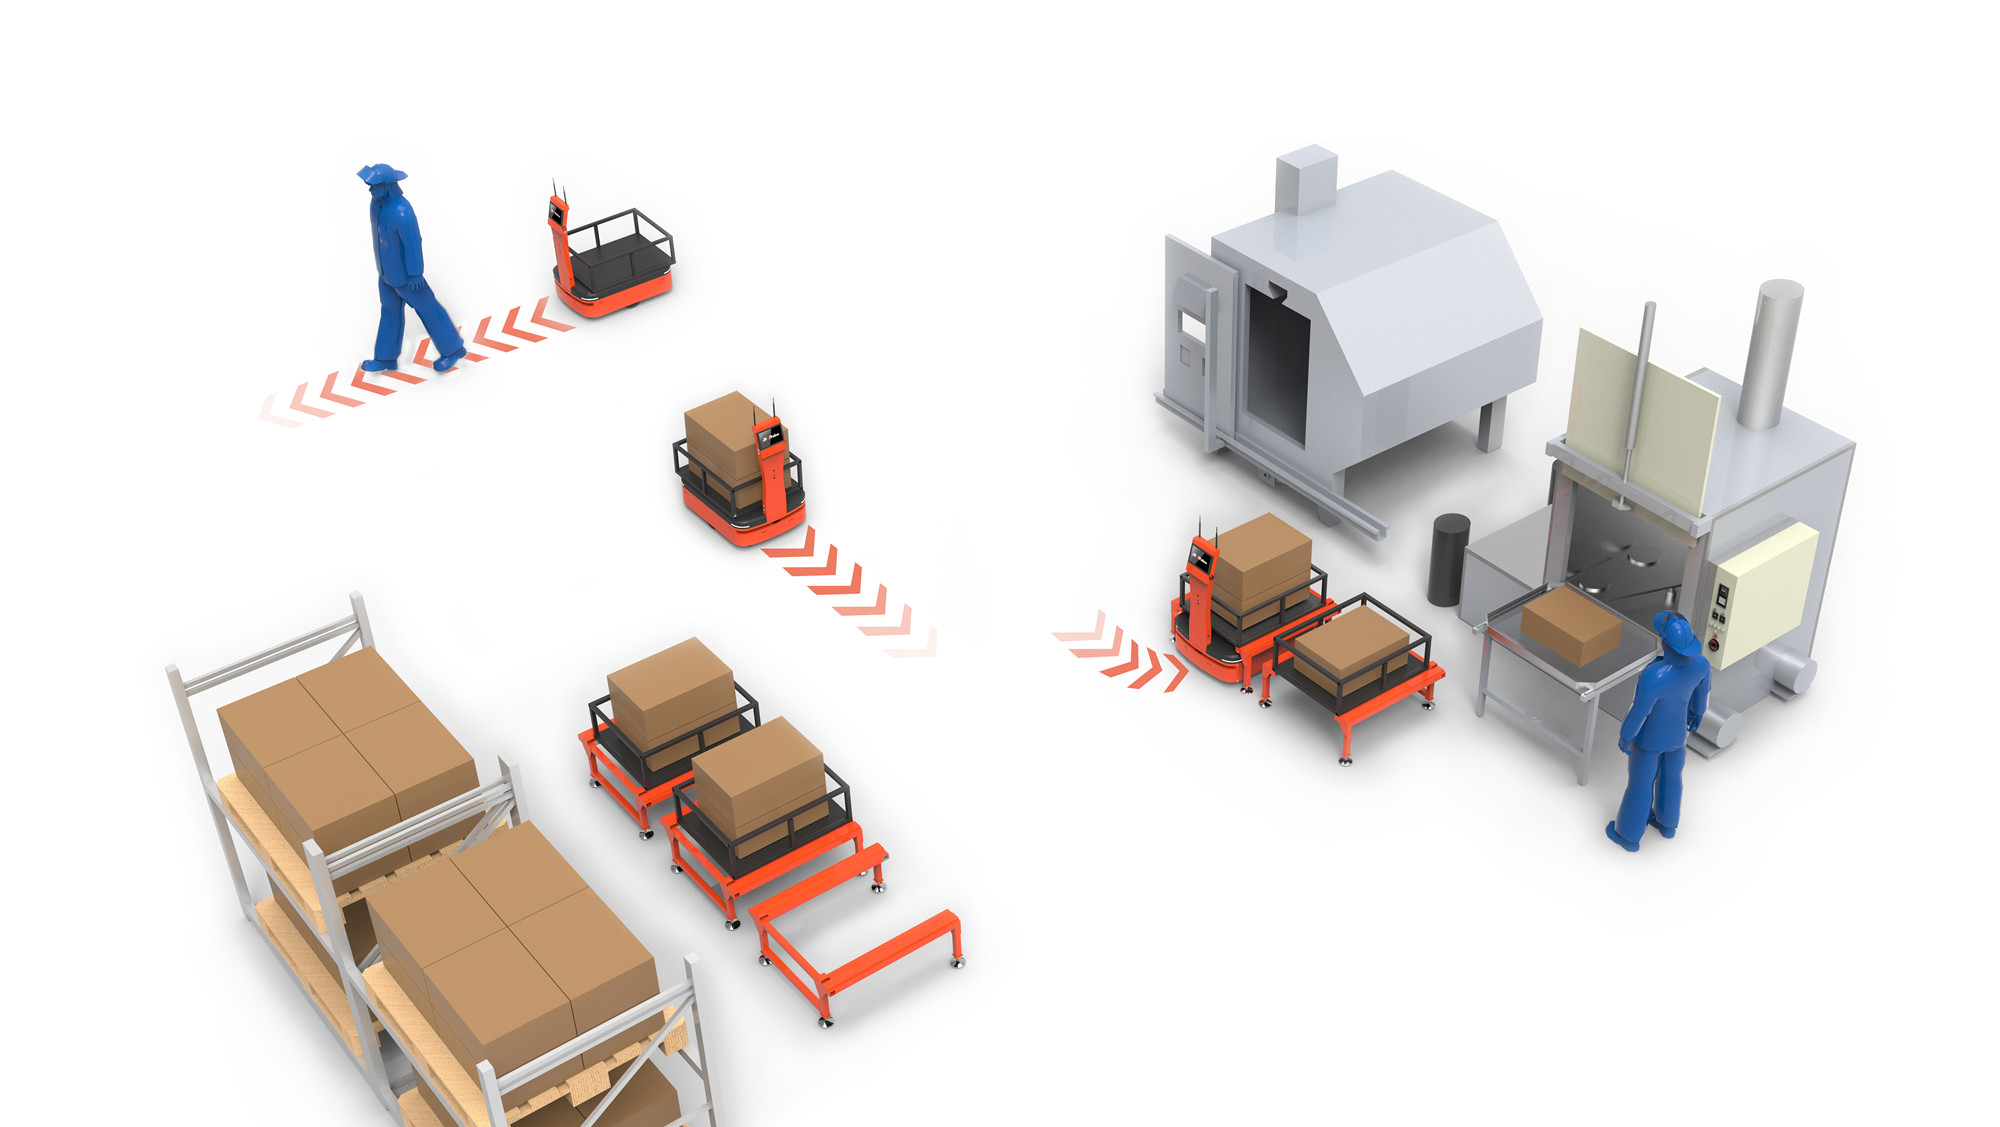 AMR replaces AGV as a trend, intelligent logistics equipment essential for manufacturing (Figure 1)